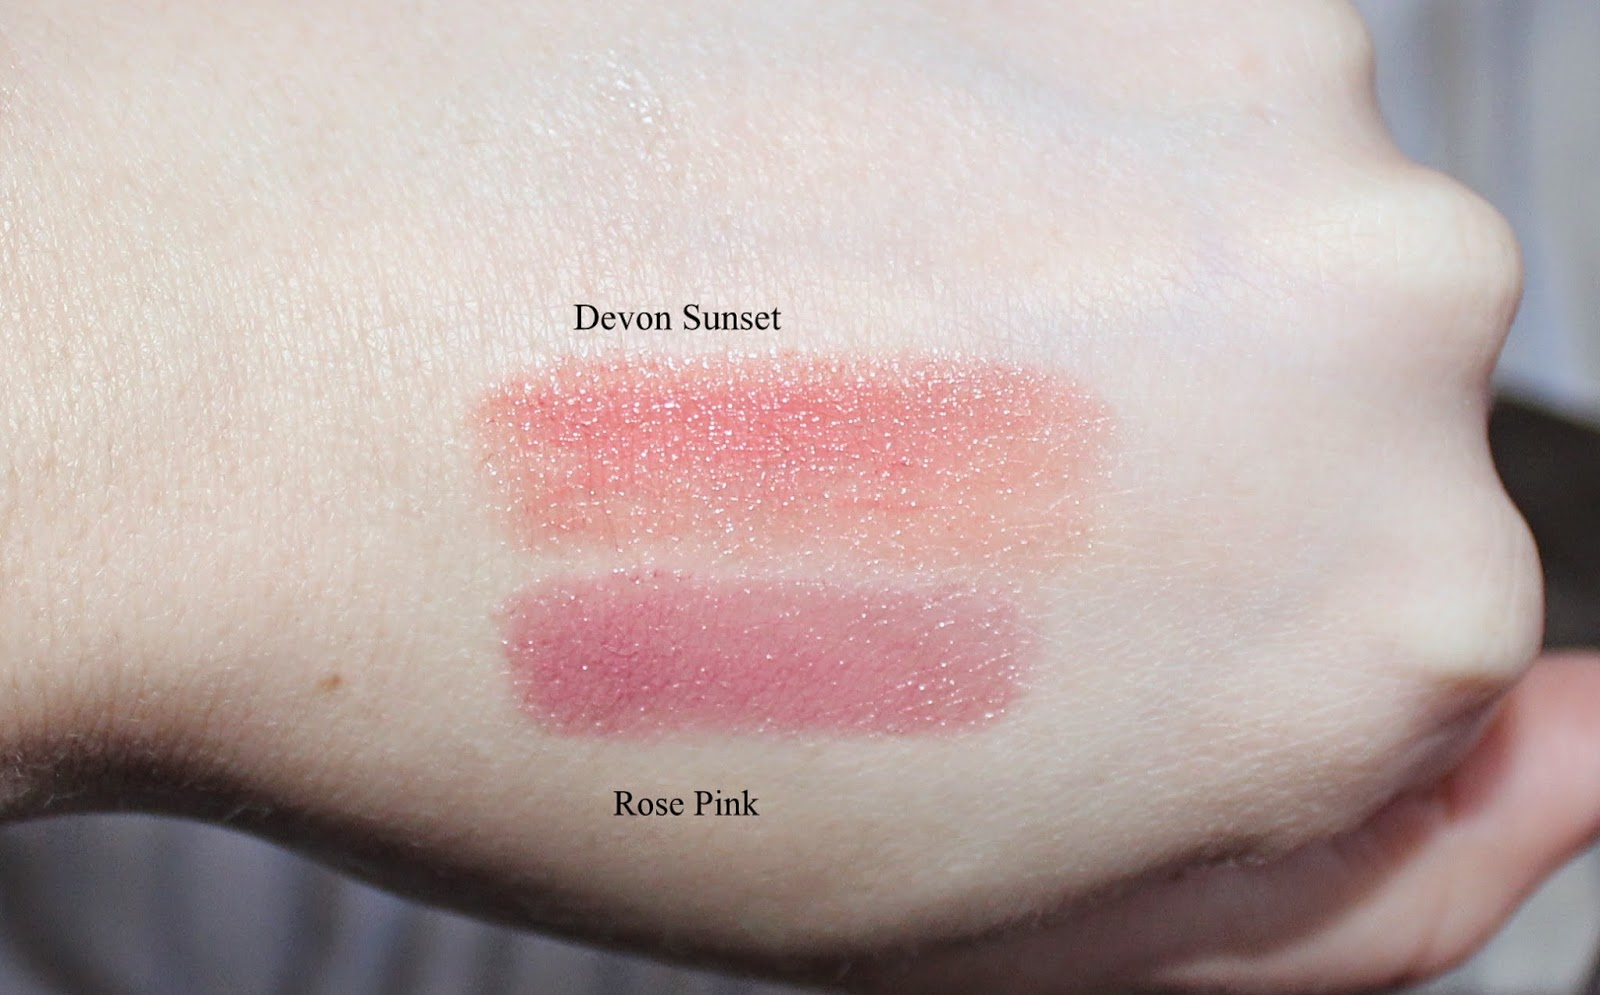 Burberry Kisses in Devon Sunset & Rose Pink